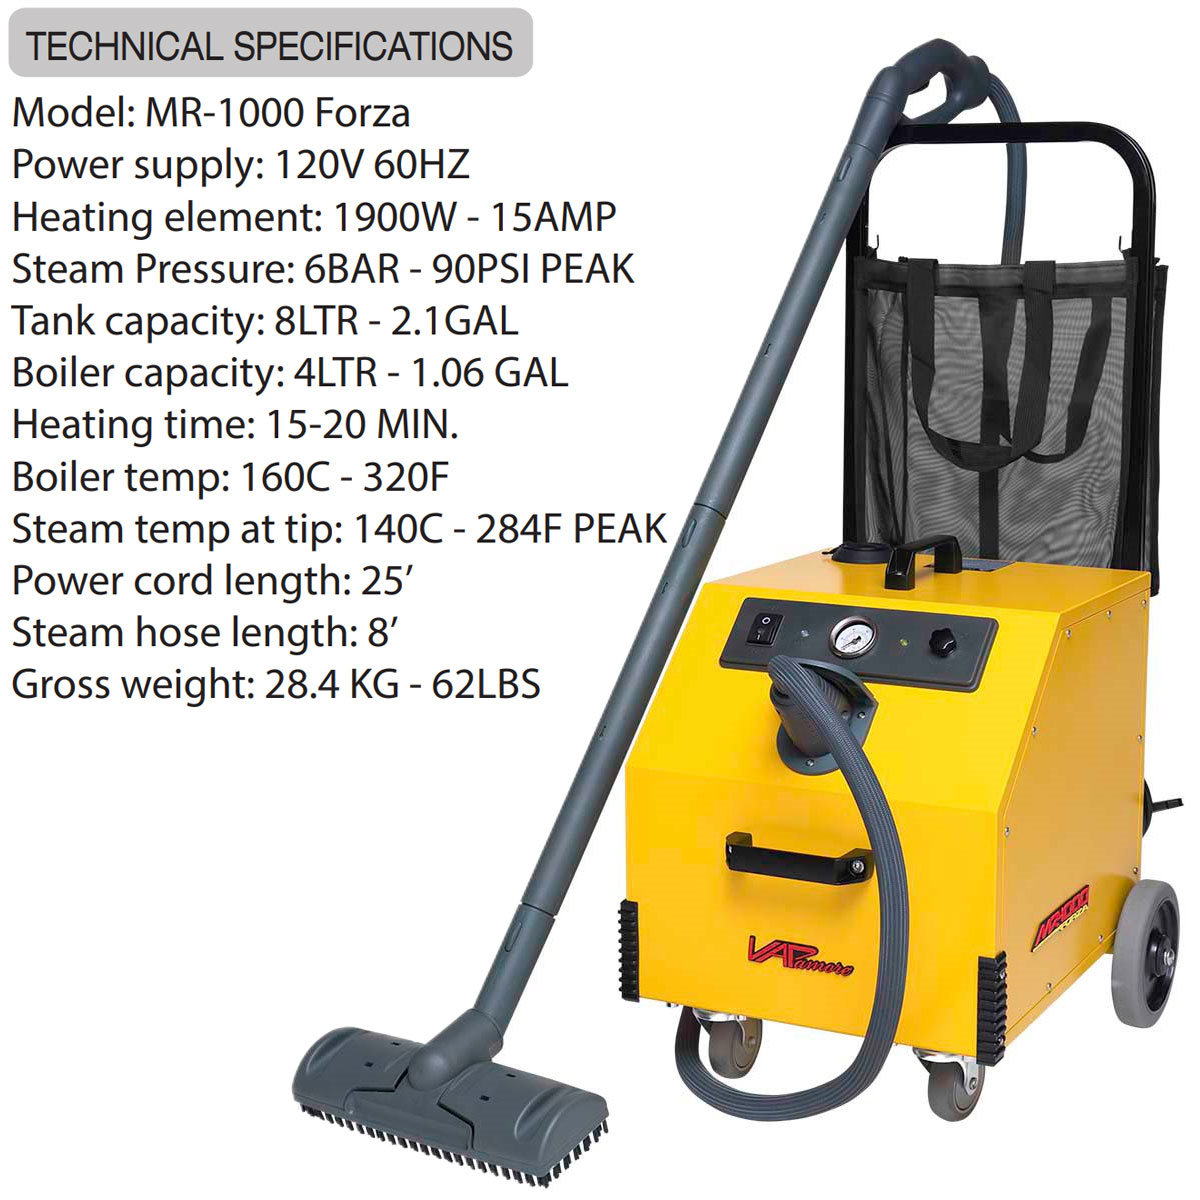 Vapamore MR-1000 Forza Steam Cleaner Technical Specifications